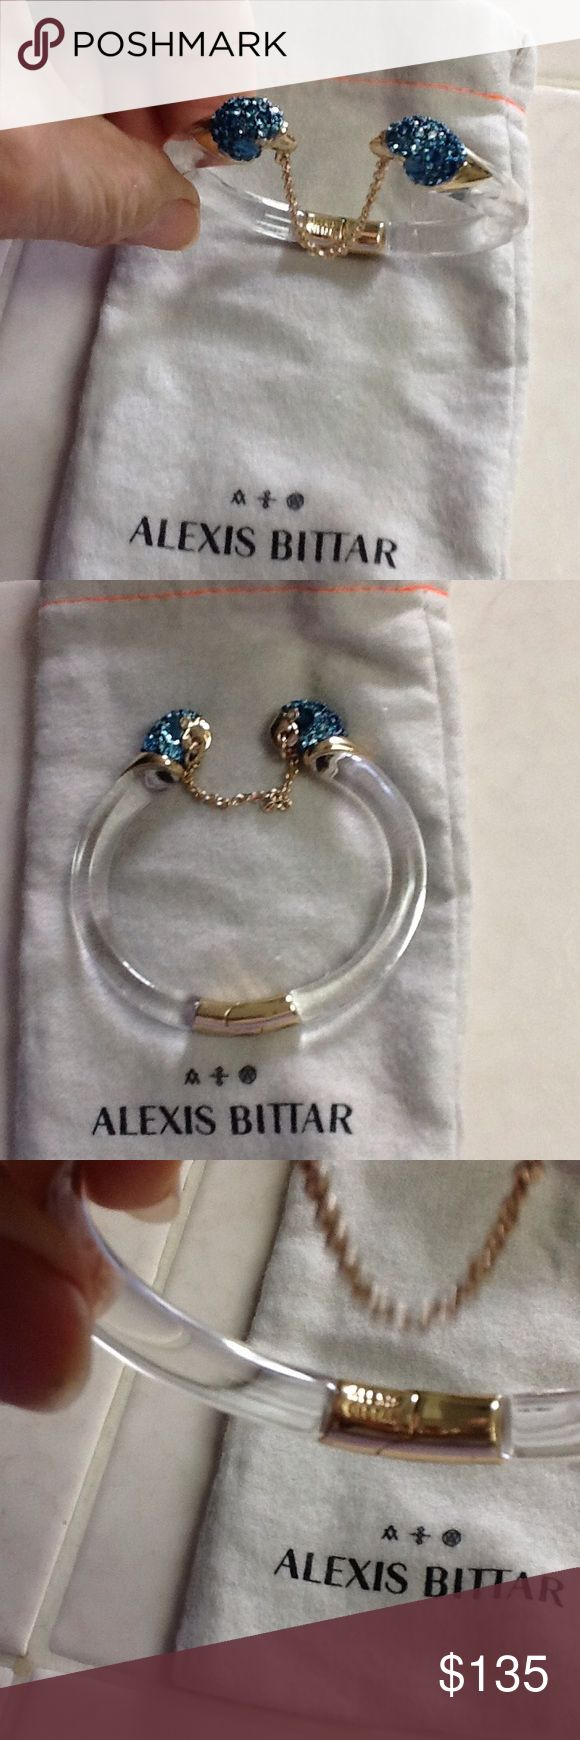 BRAND NEW RARE ALEXIS BITTAR PARROT CHAIN BRACELET Lovely, unique bracelet by Alexis Bittar .  Lucite hinged band, chain with two parrots heads of Swarovski crystals.  Alexis Bittar signature on hinge.  New, never worn. Alexis Bittar Jewelry Bracelets